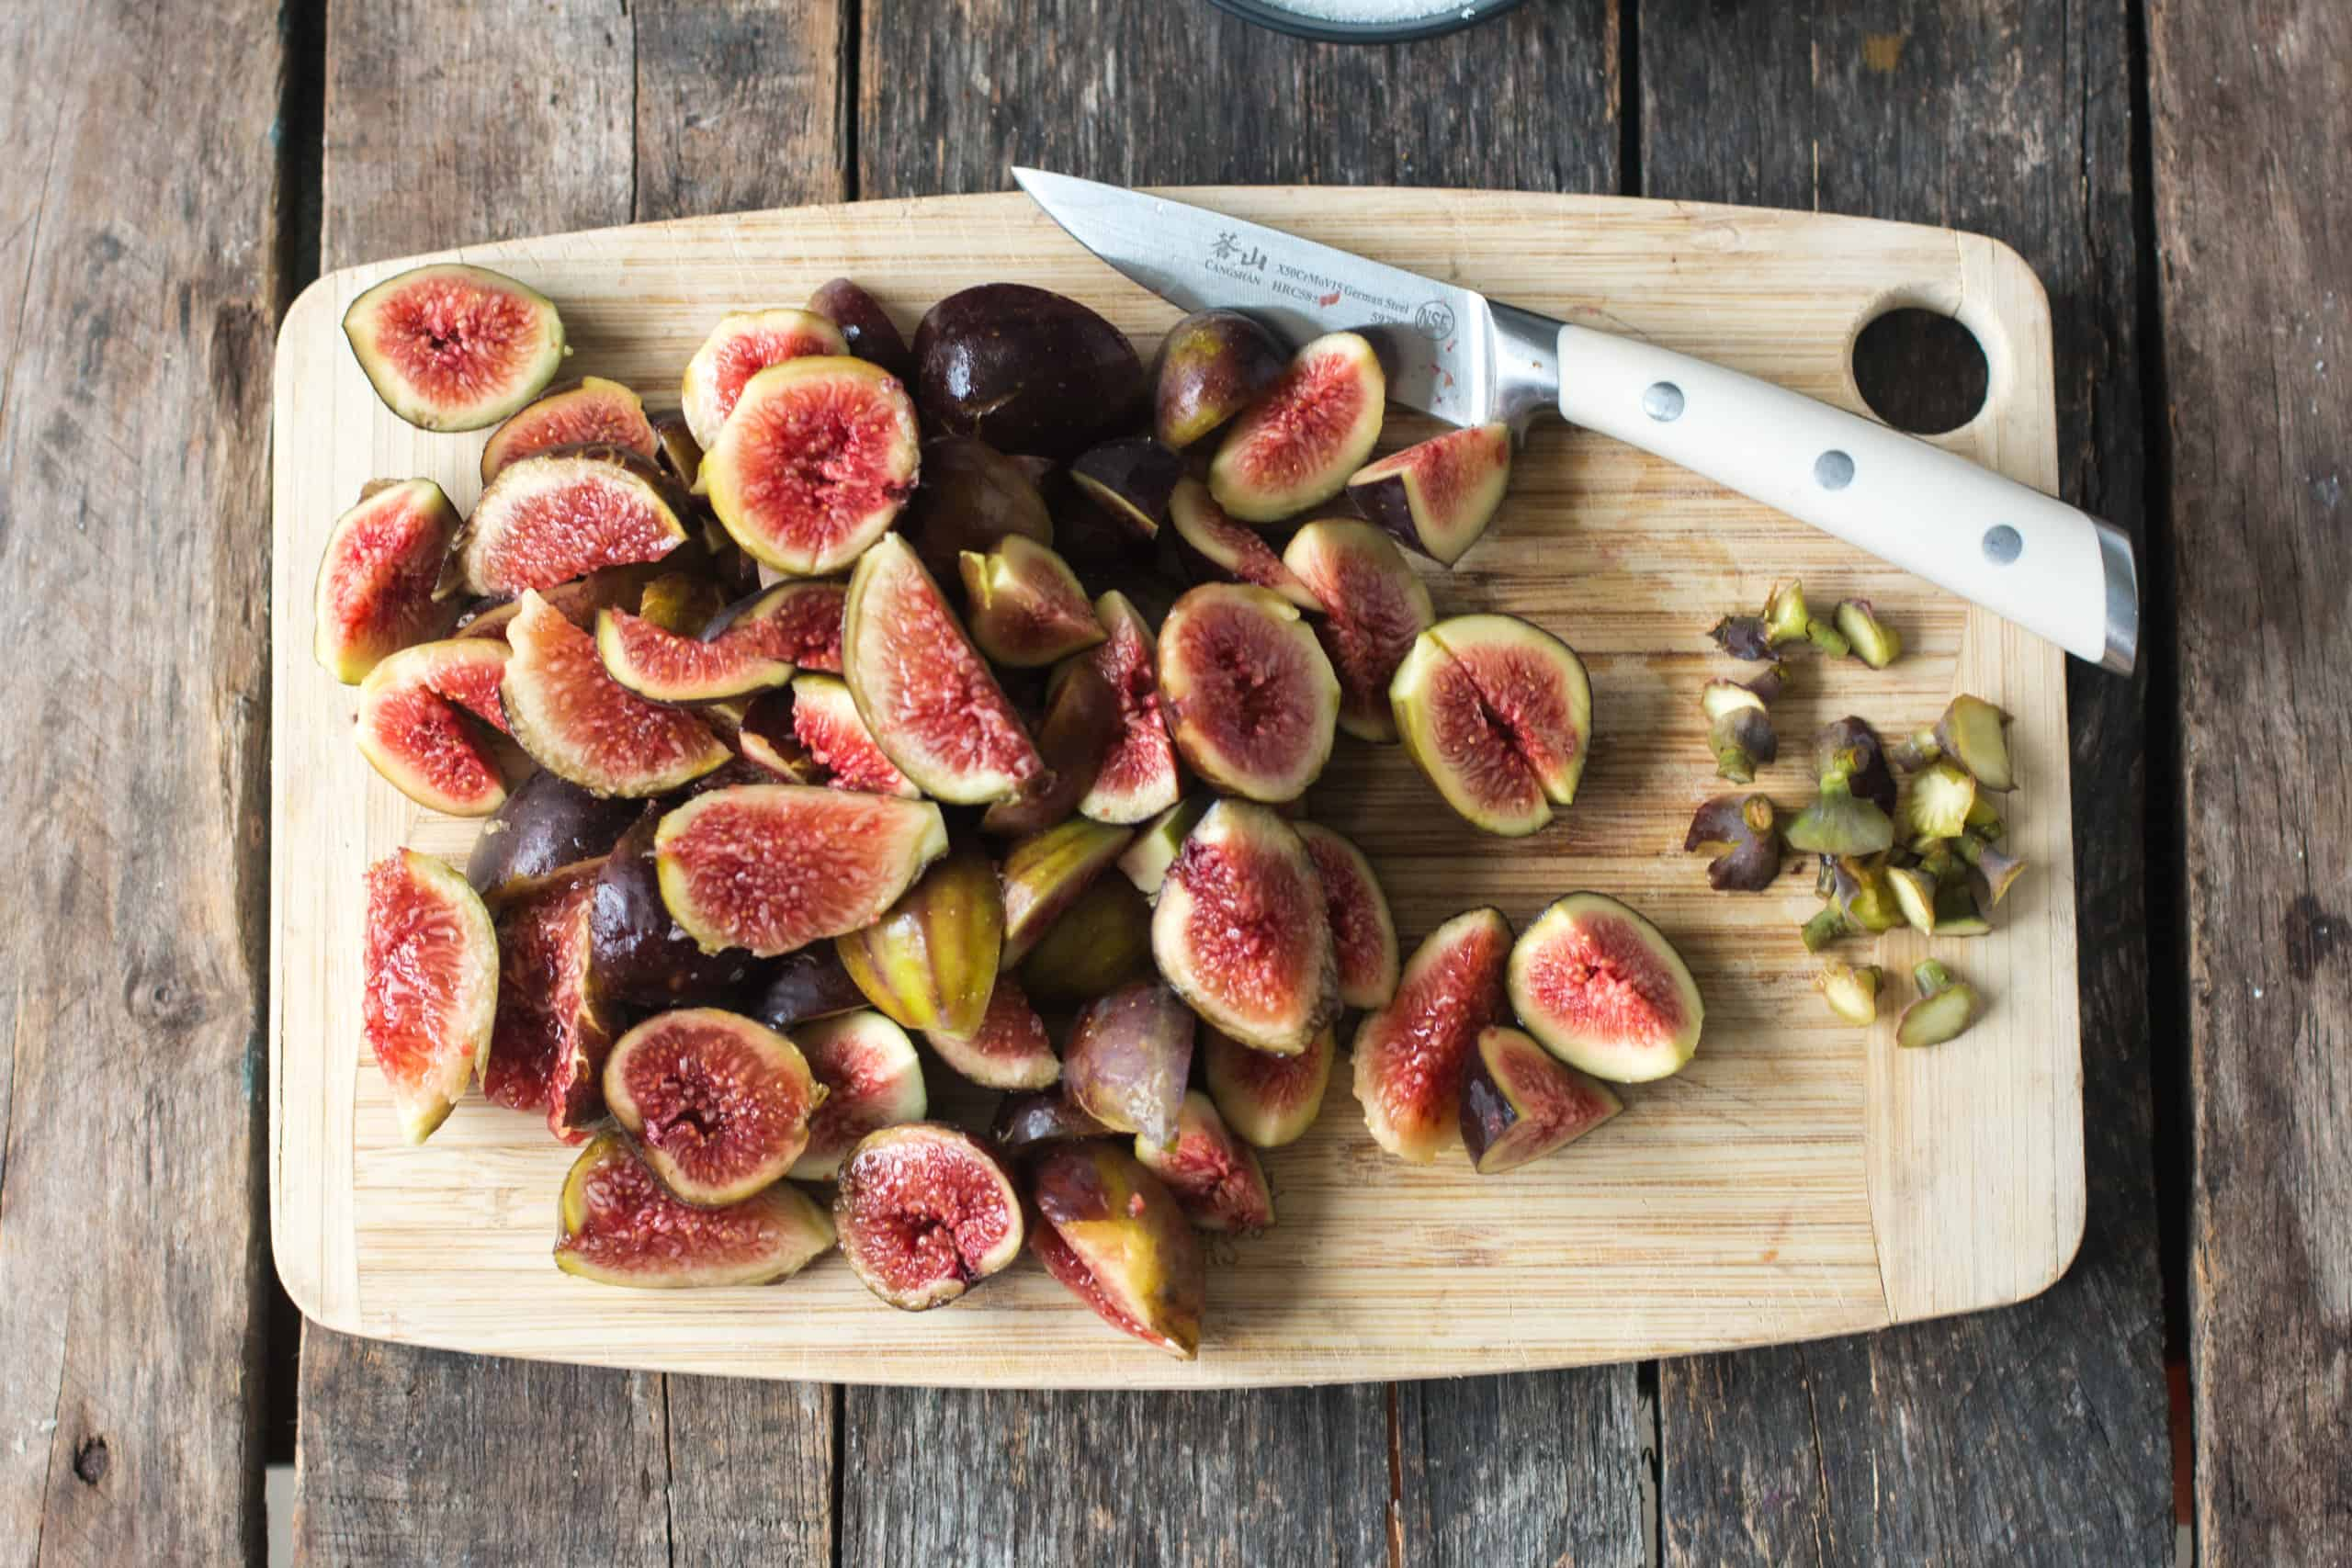 fresh figs being cut on a cutting board, removing the stem